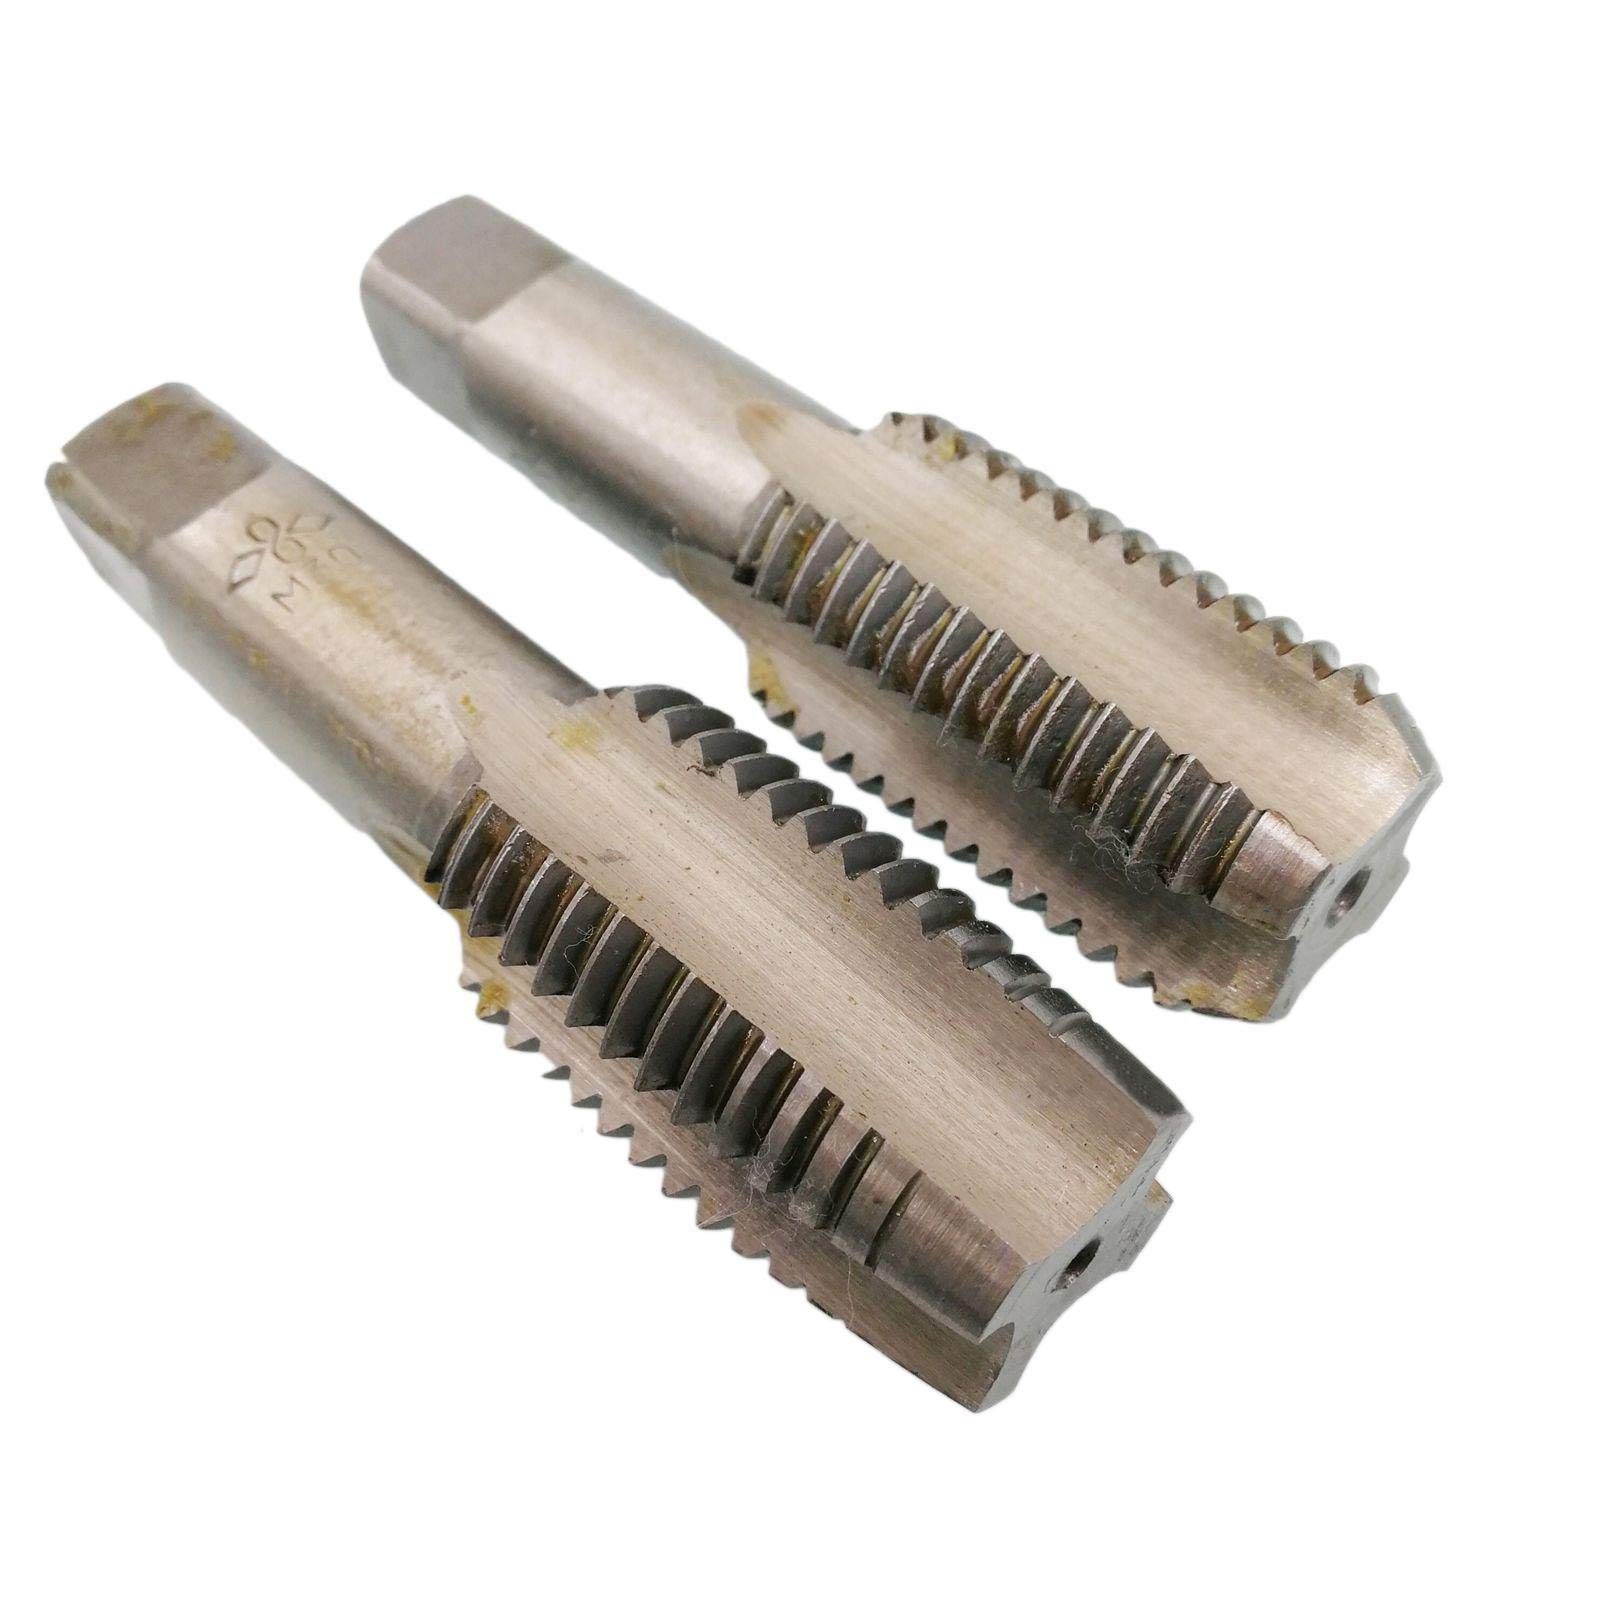 HSS 30mm x 3.5 Taper and Plug Tap Right Hand Thread M30 x 3.5mm Pitch by Yodaoke